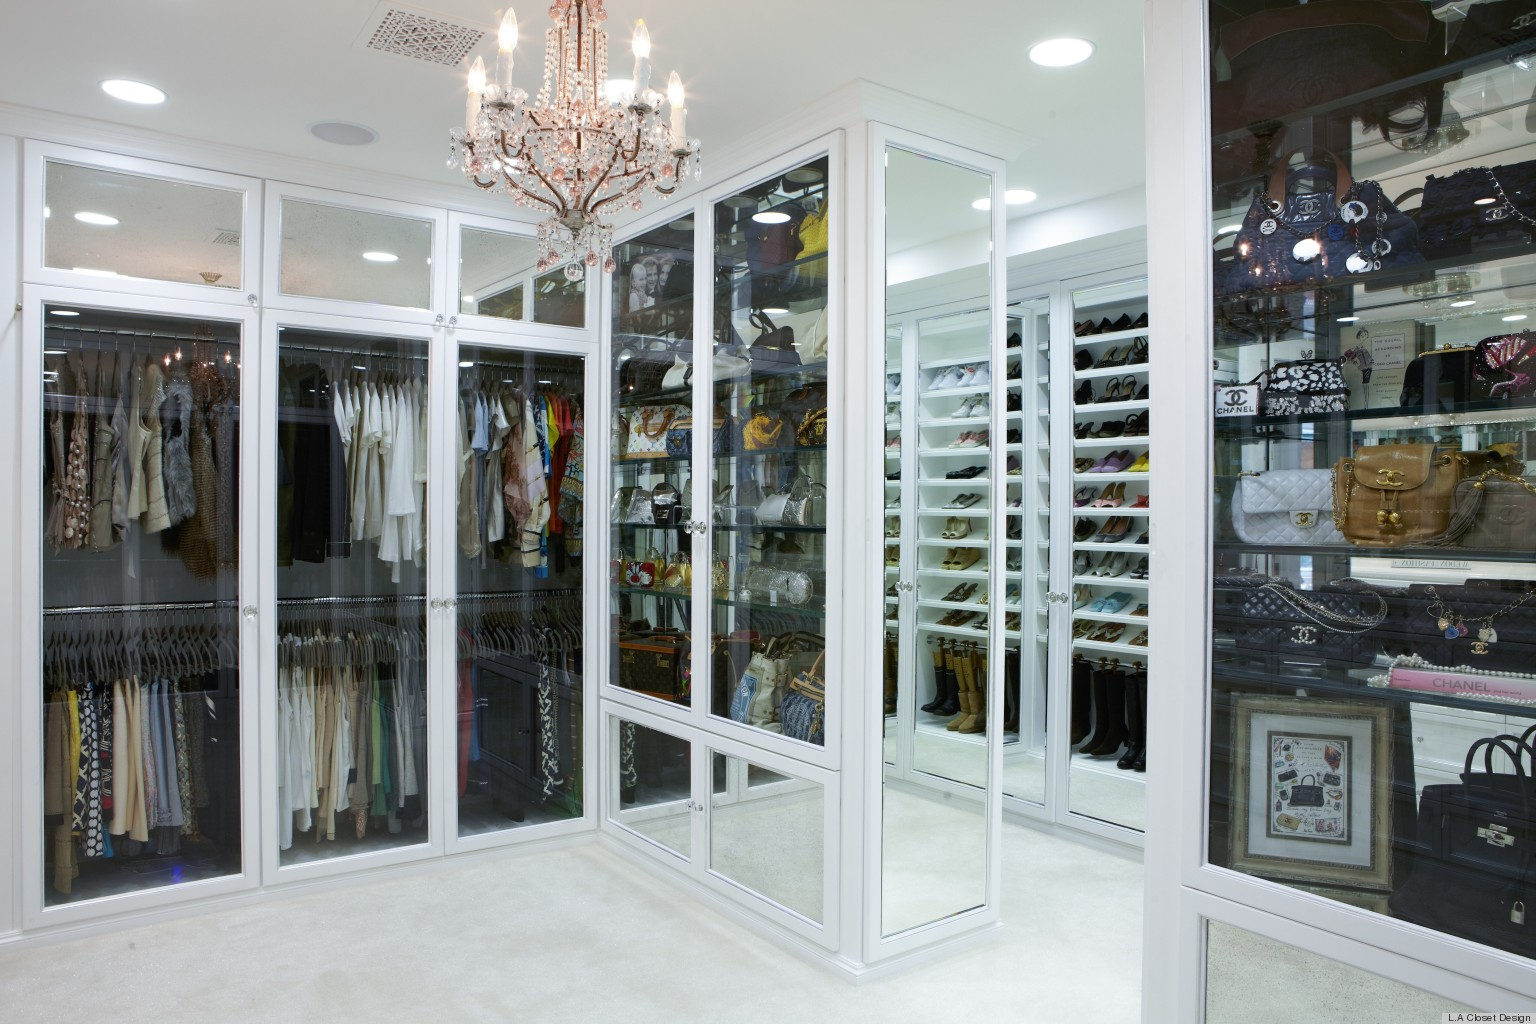 Rochelle maize 39 s 100 000 closet designed by lisa adams for O kitchen city of dreams